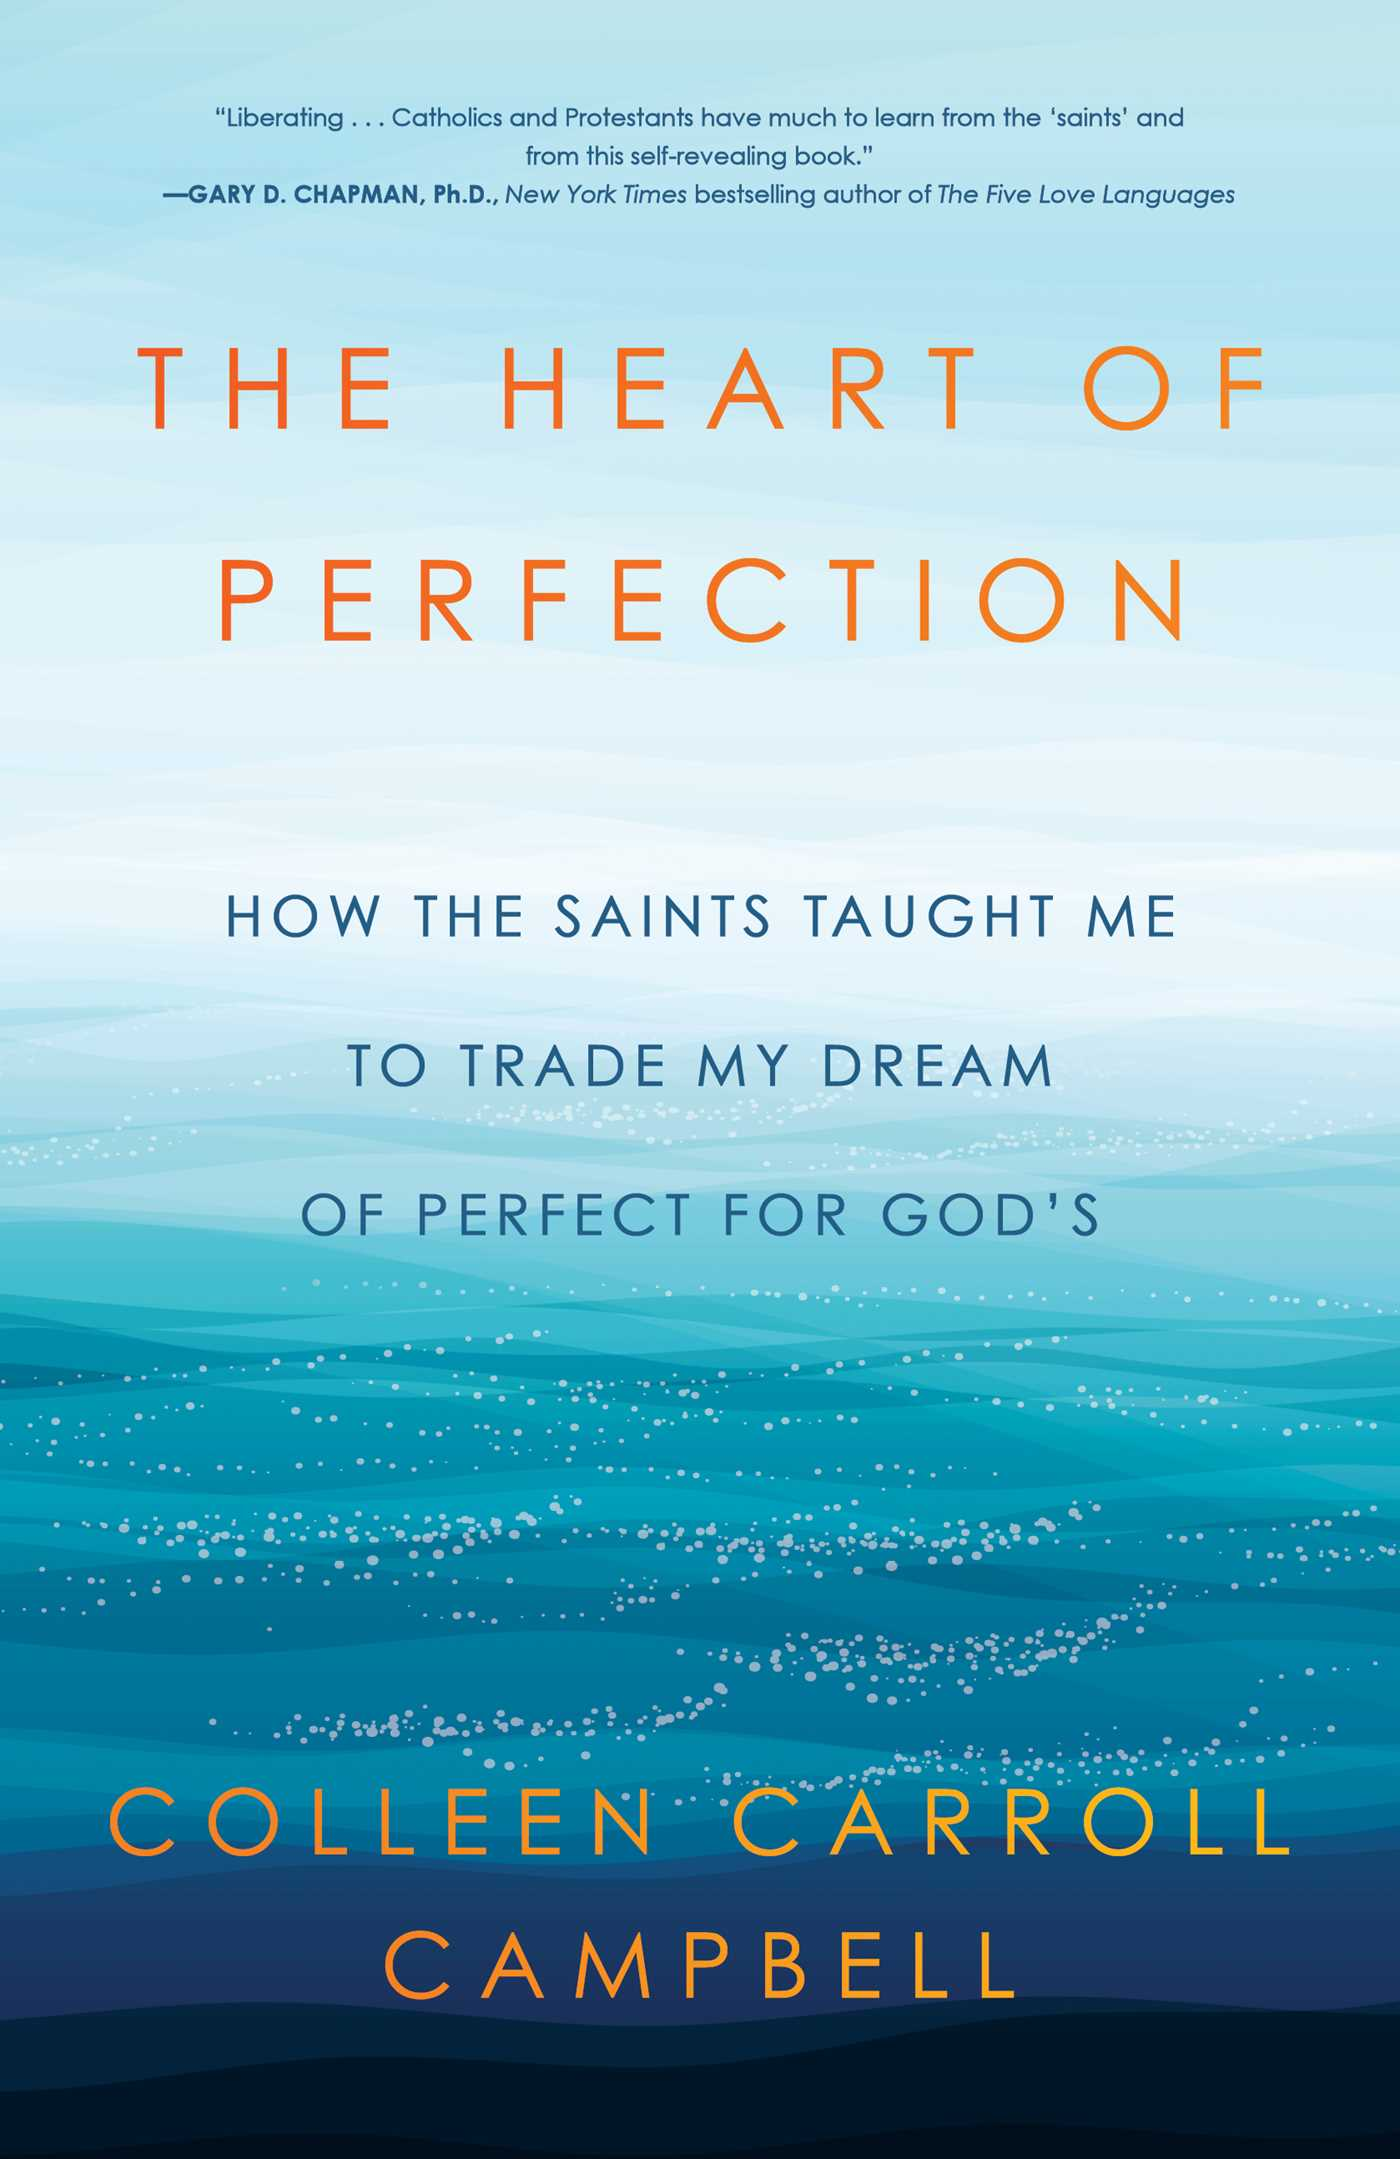 The Heart of Perfection | Book by Colleen Carroll Campbell